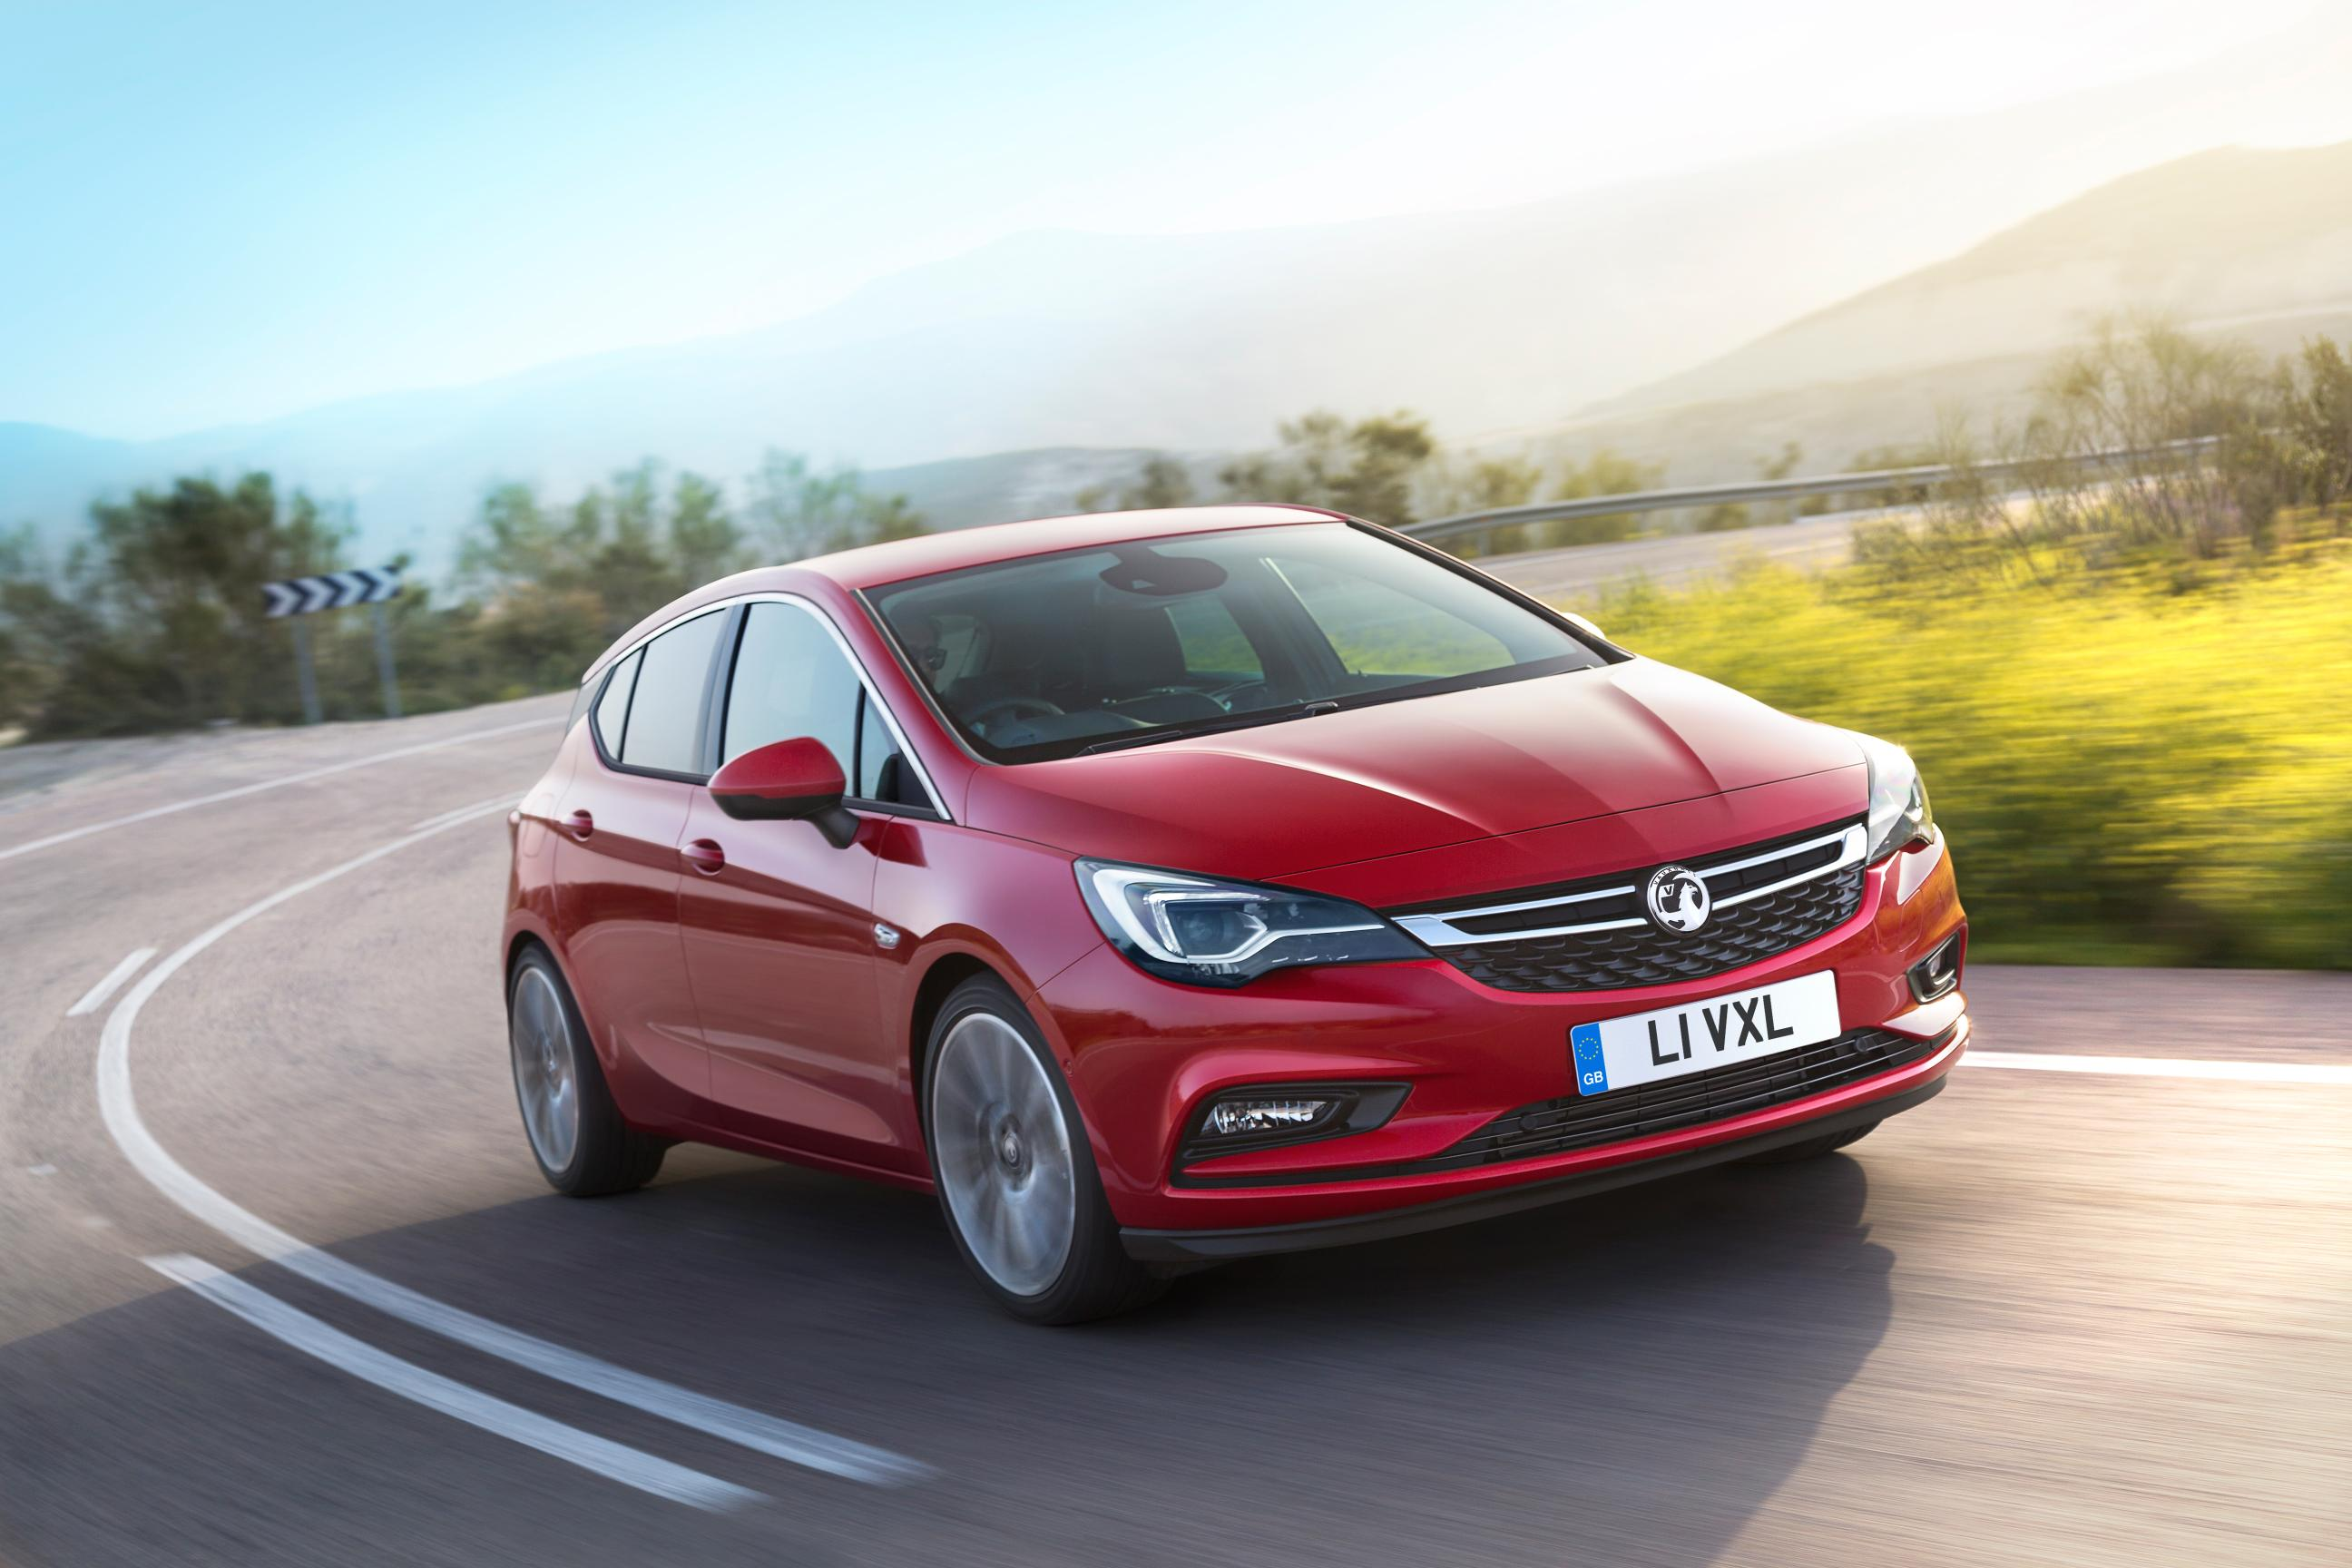 Vauxhall Astra 2017 on Road